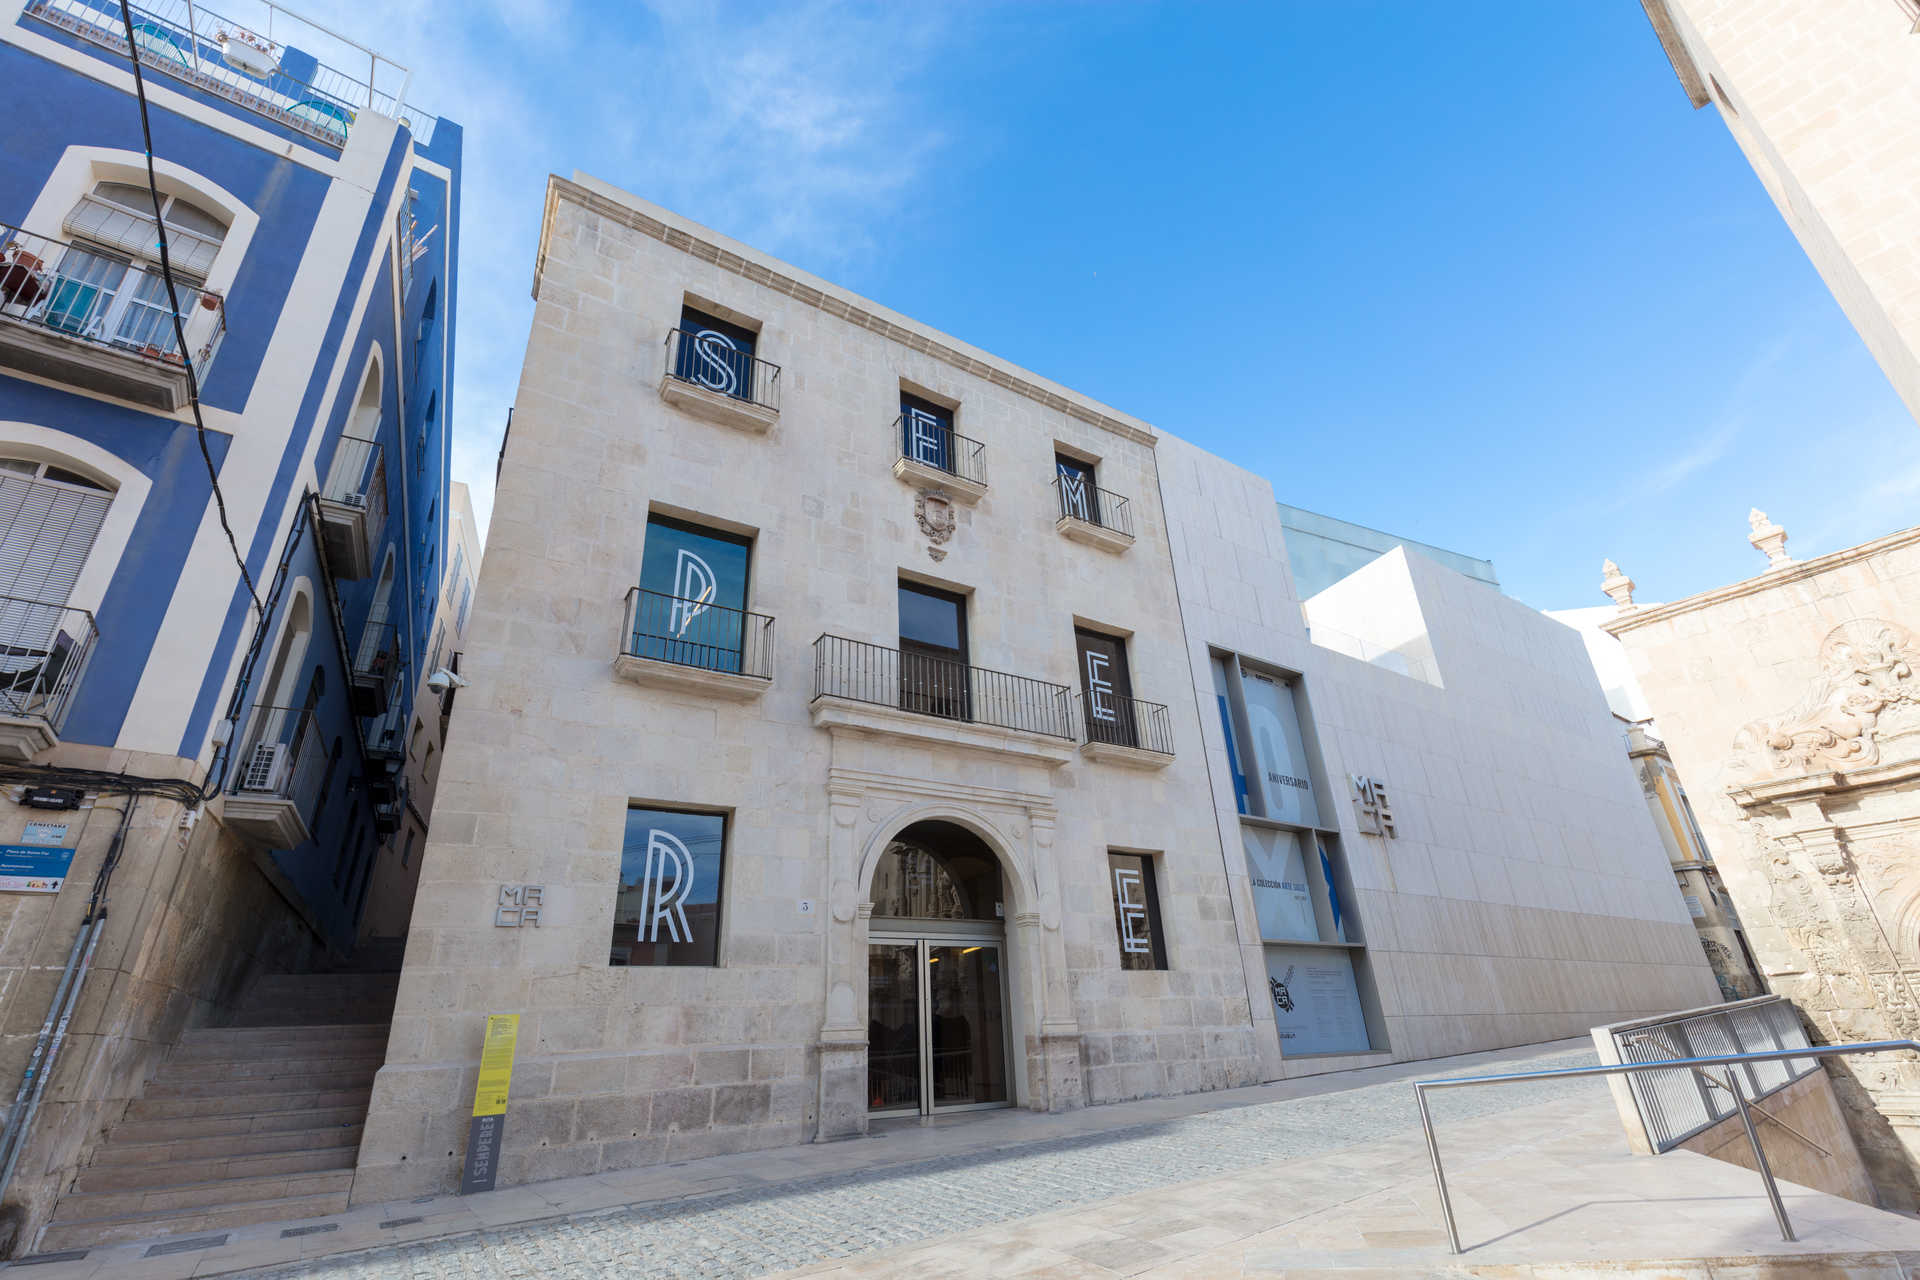 MUSEUM OF CONTEMPORANY ART OF ALICANTE